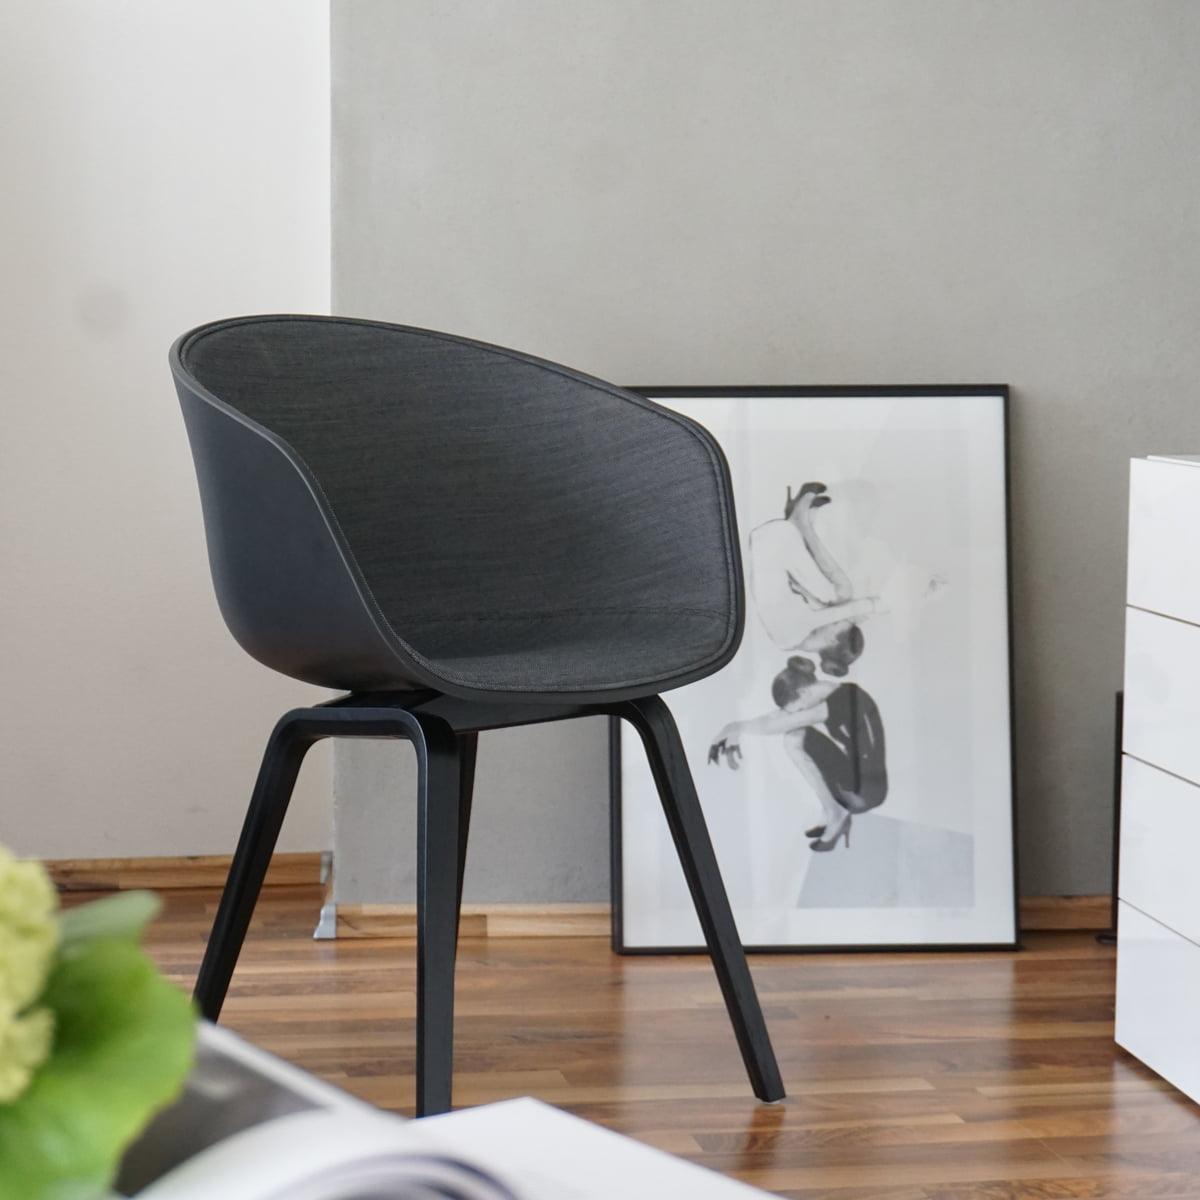 scandinavian office chairs. Office Chair Conference Dining Scandinavian Design Aac22. Aac22 Chairs